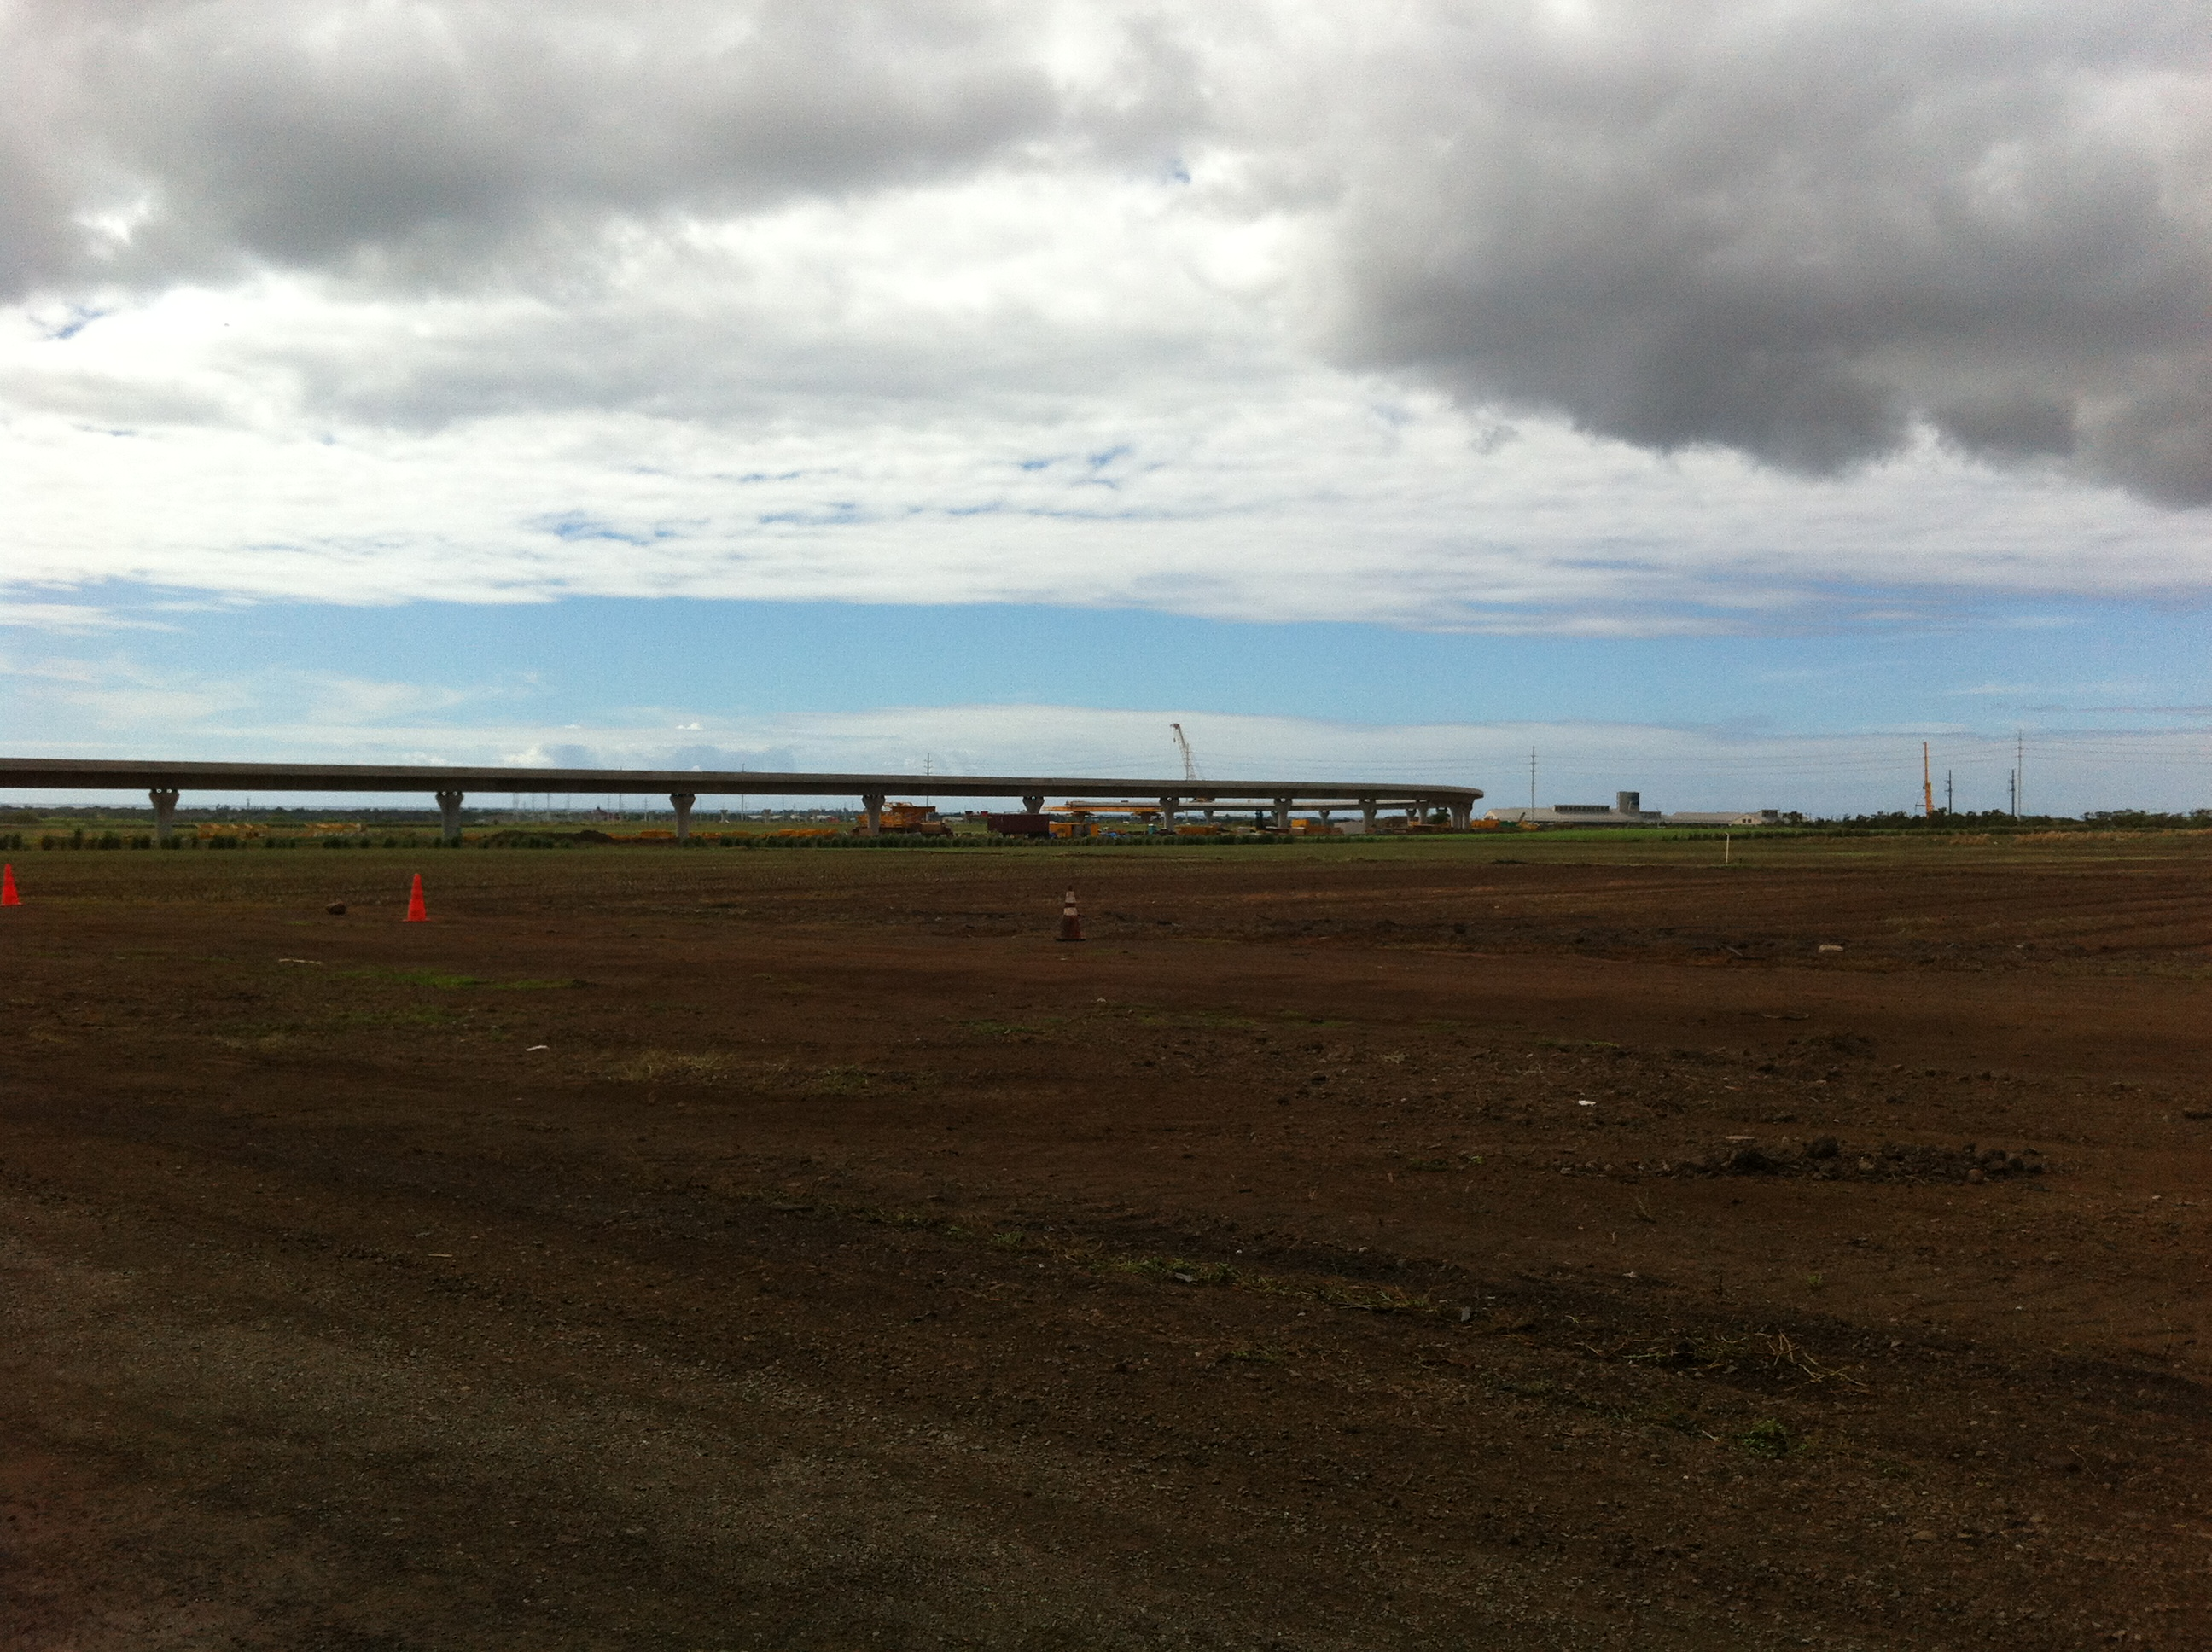 Rail Pilings and Tracks now in the Ewa Plain